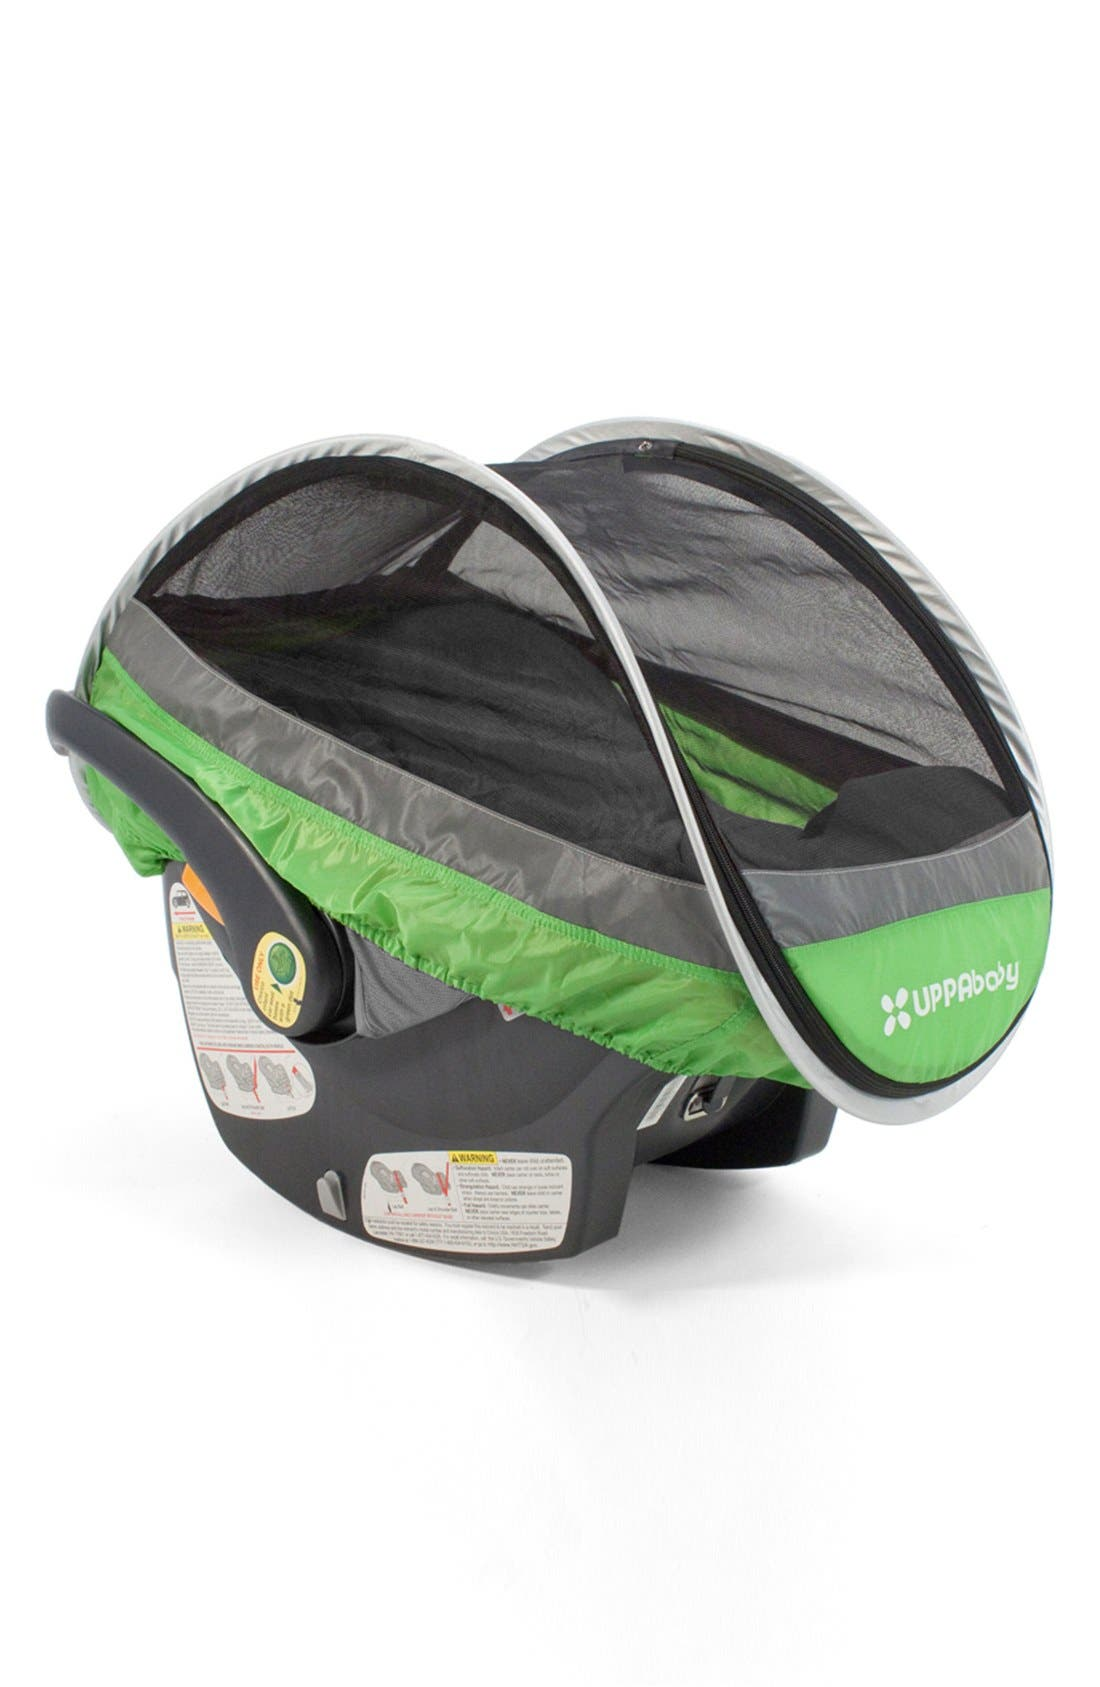 Main Image - UPPAbaby 'Cabana' Infant Car Seat All-Weather Shield